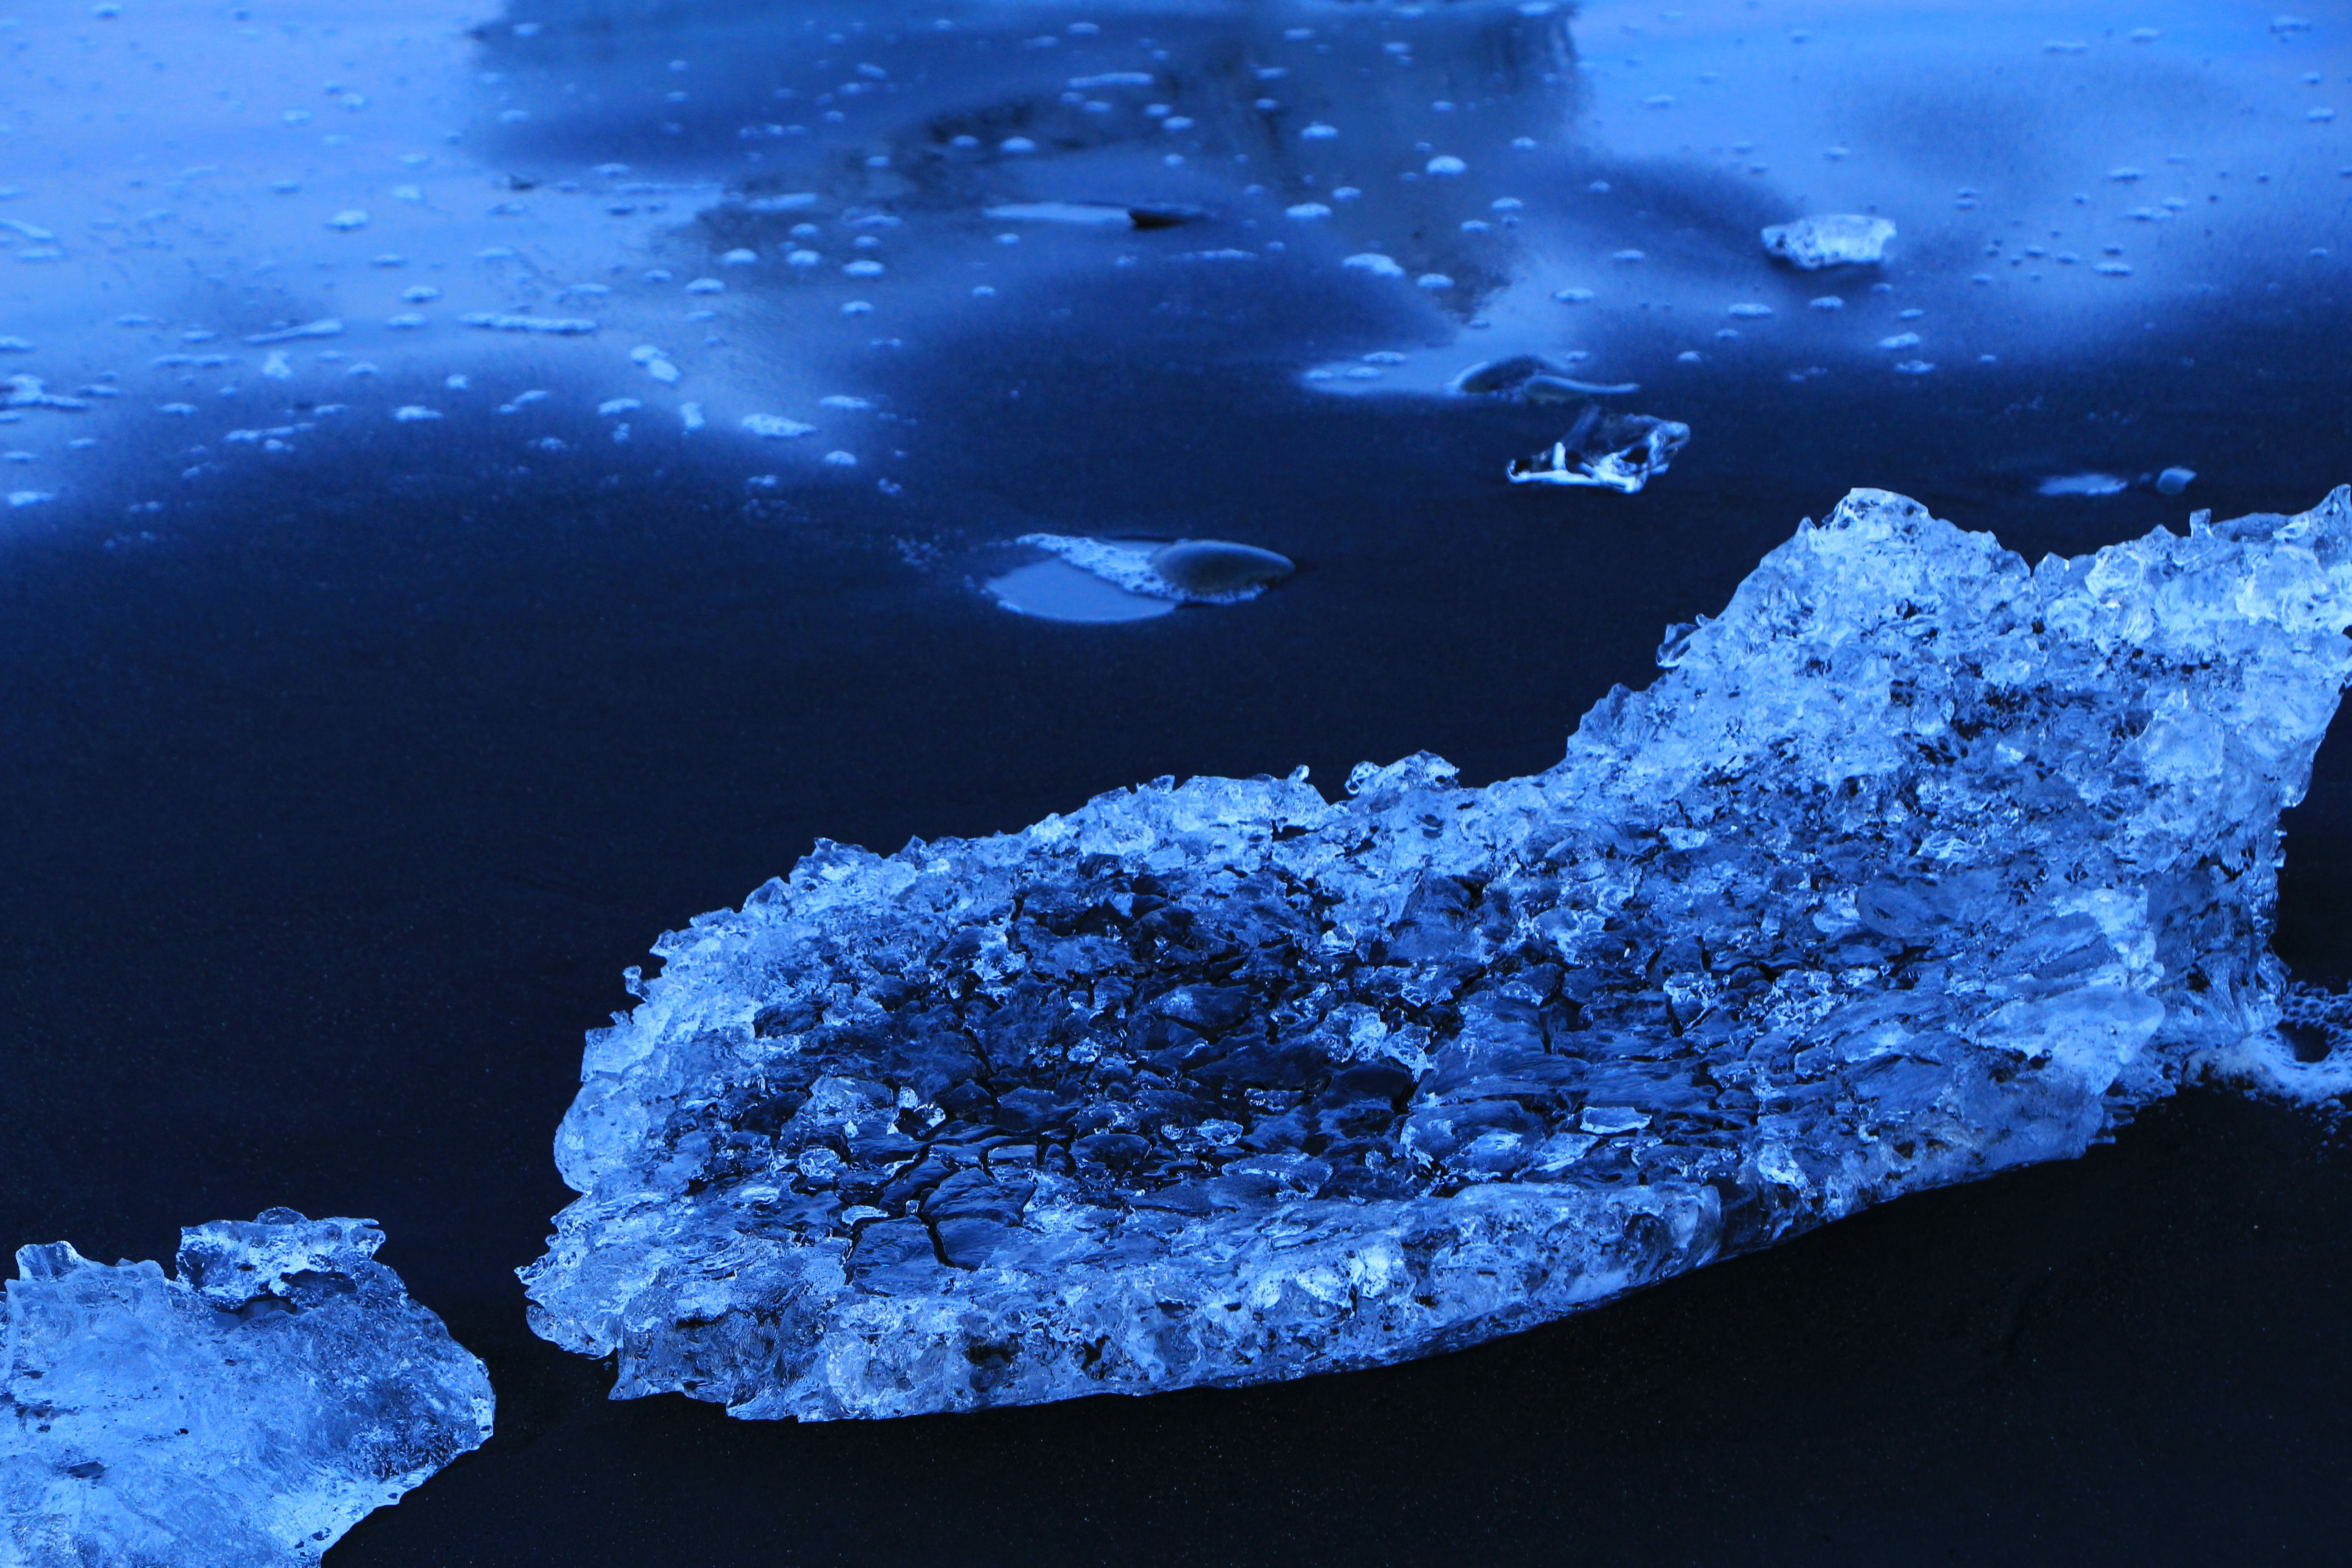 ice berg on body of water